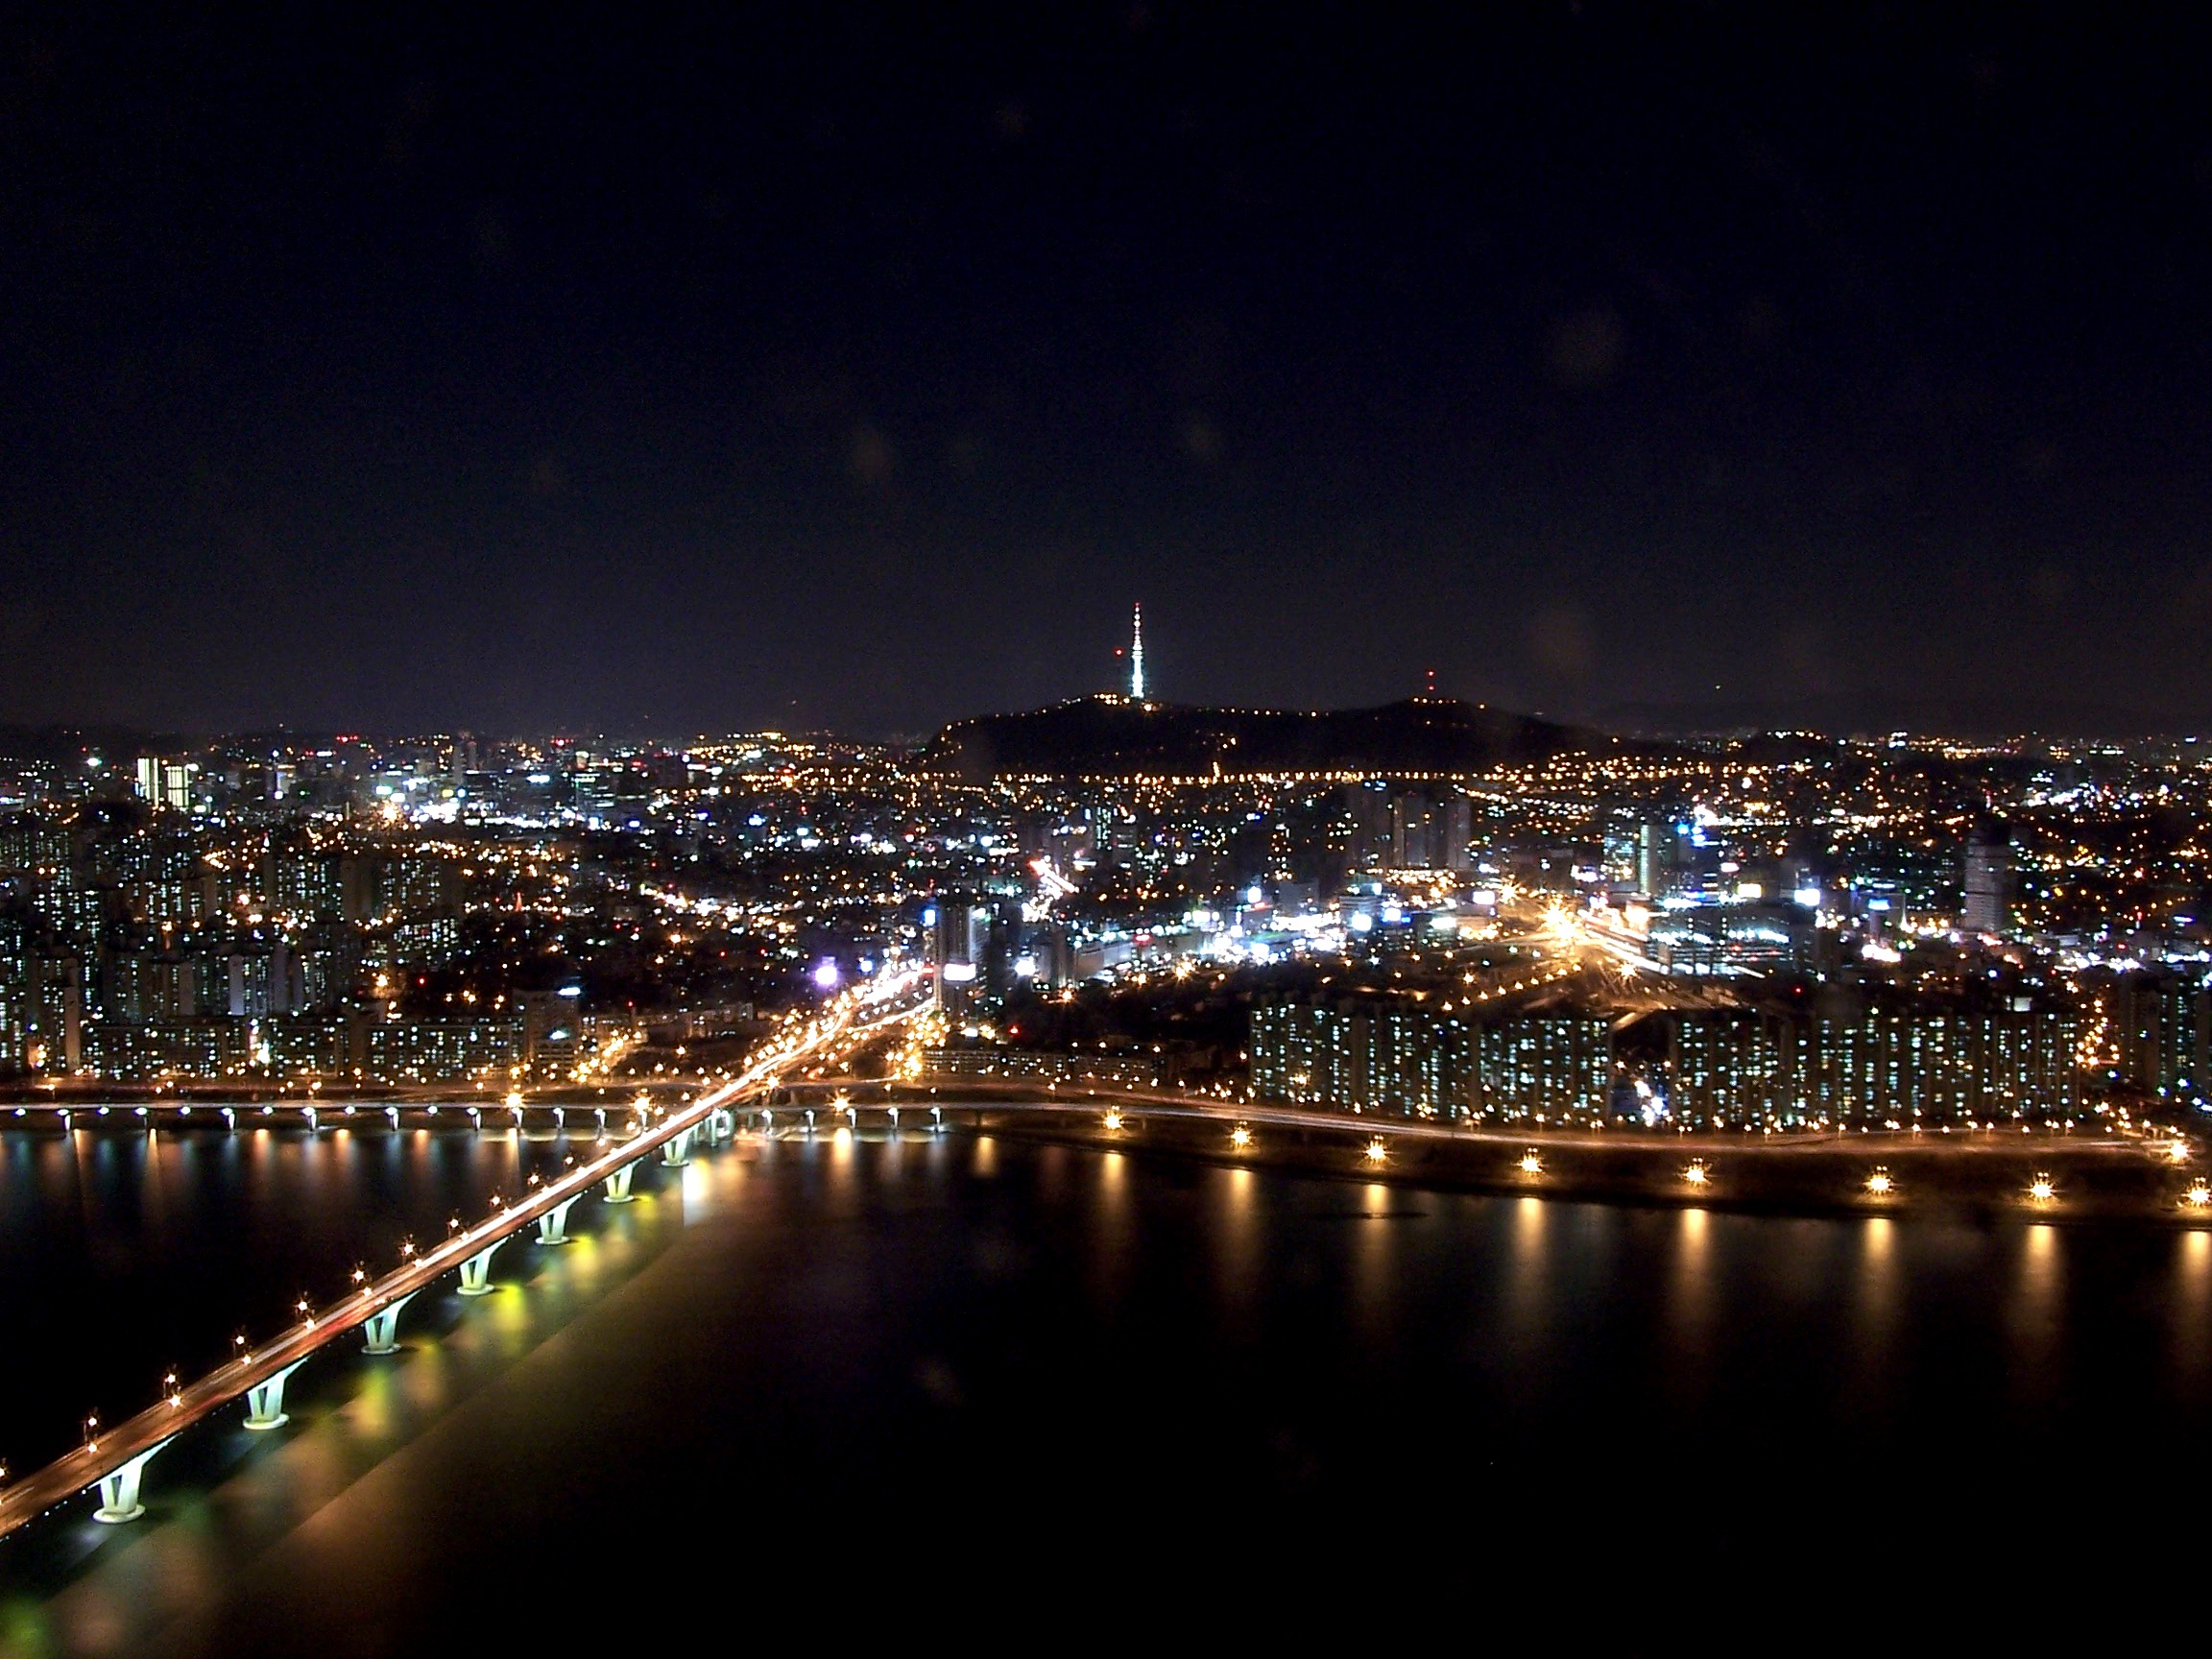 Seoul at night by Charles Lam - CC BY-SA 2.0